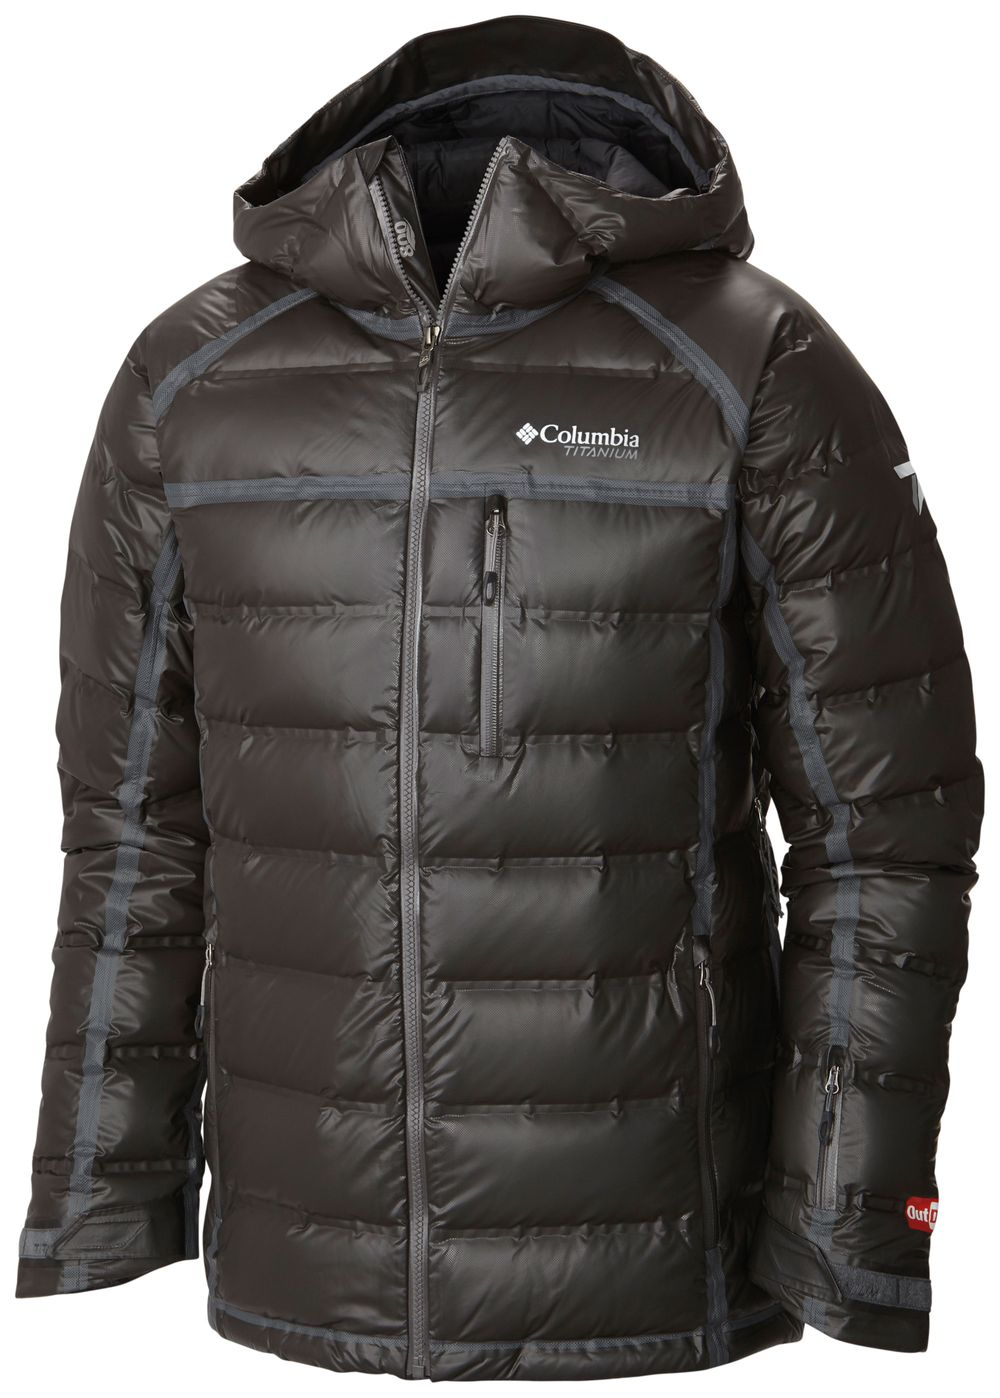 Columbia Titanium OutDry Ex Diamond Down Jacket